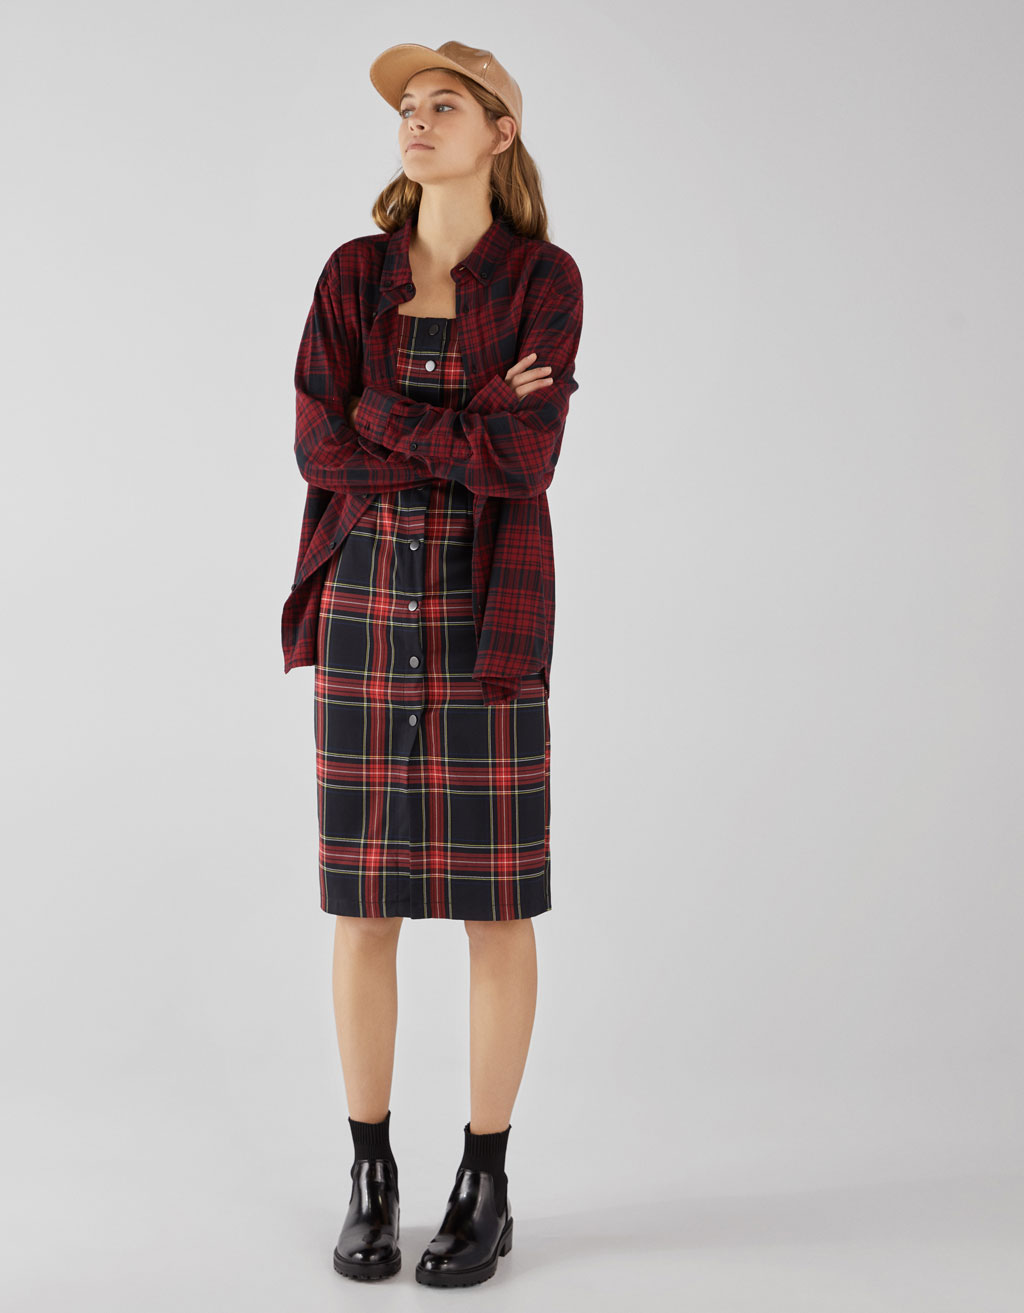 Plaid dress with buttons